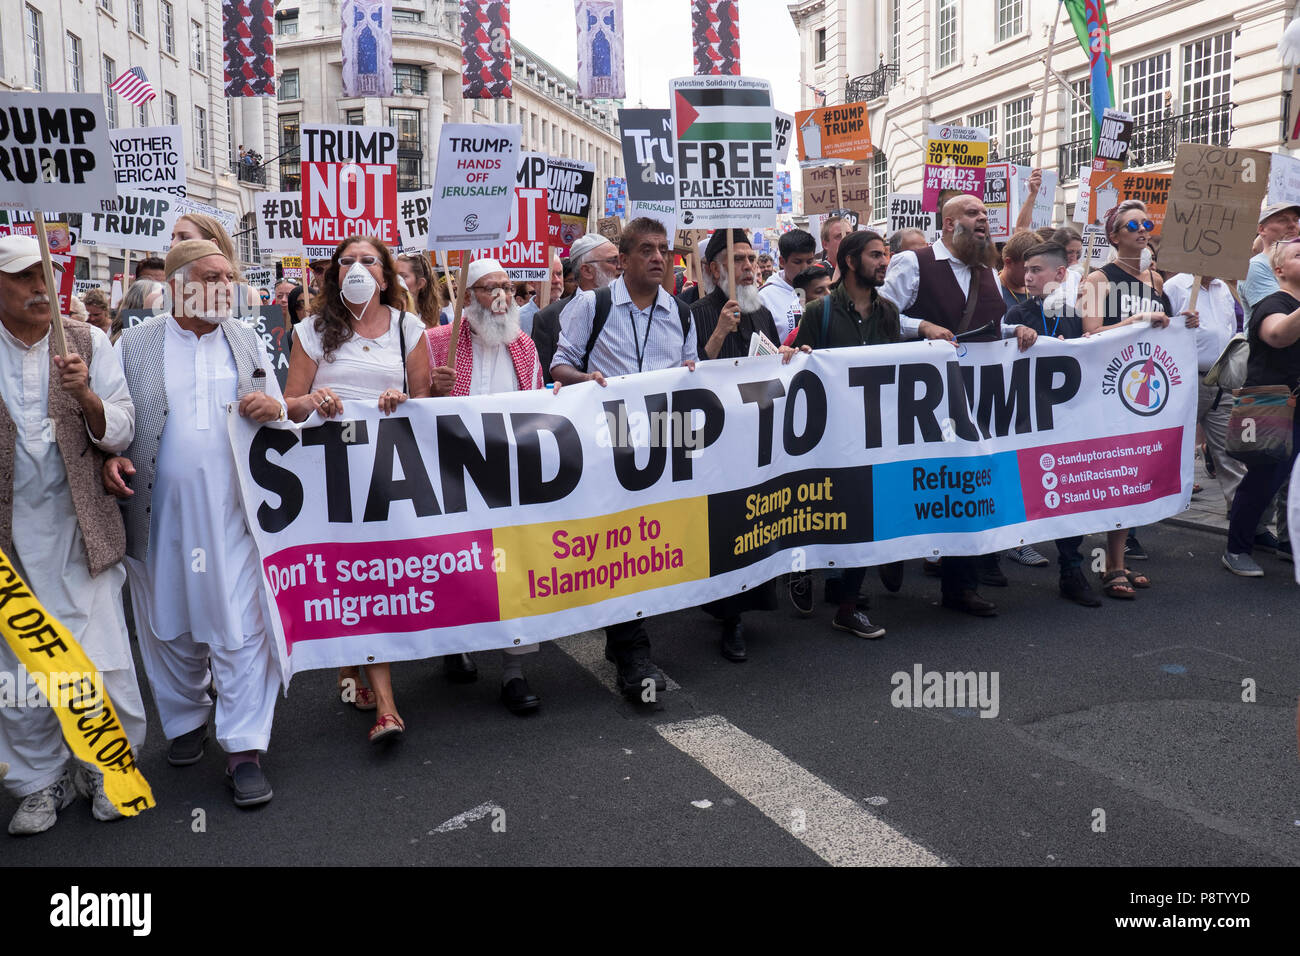 London, United Kingdon. 13th July 2018. 100,000 protest in central London against the visit by US President Donald Trump. Credit: Mike Abrahams/Alamy Live News - Stock Image